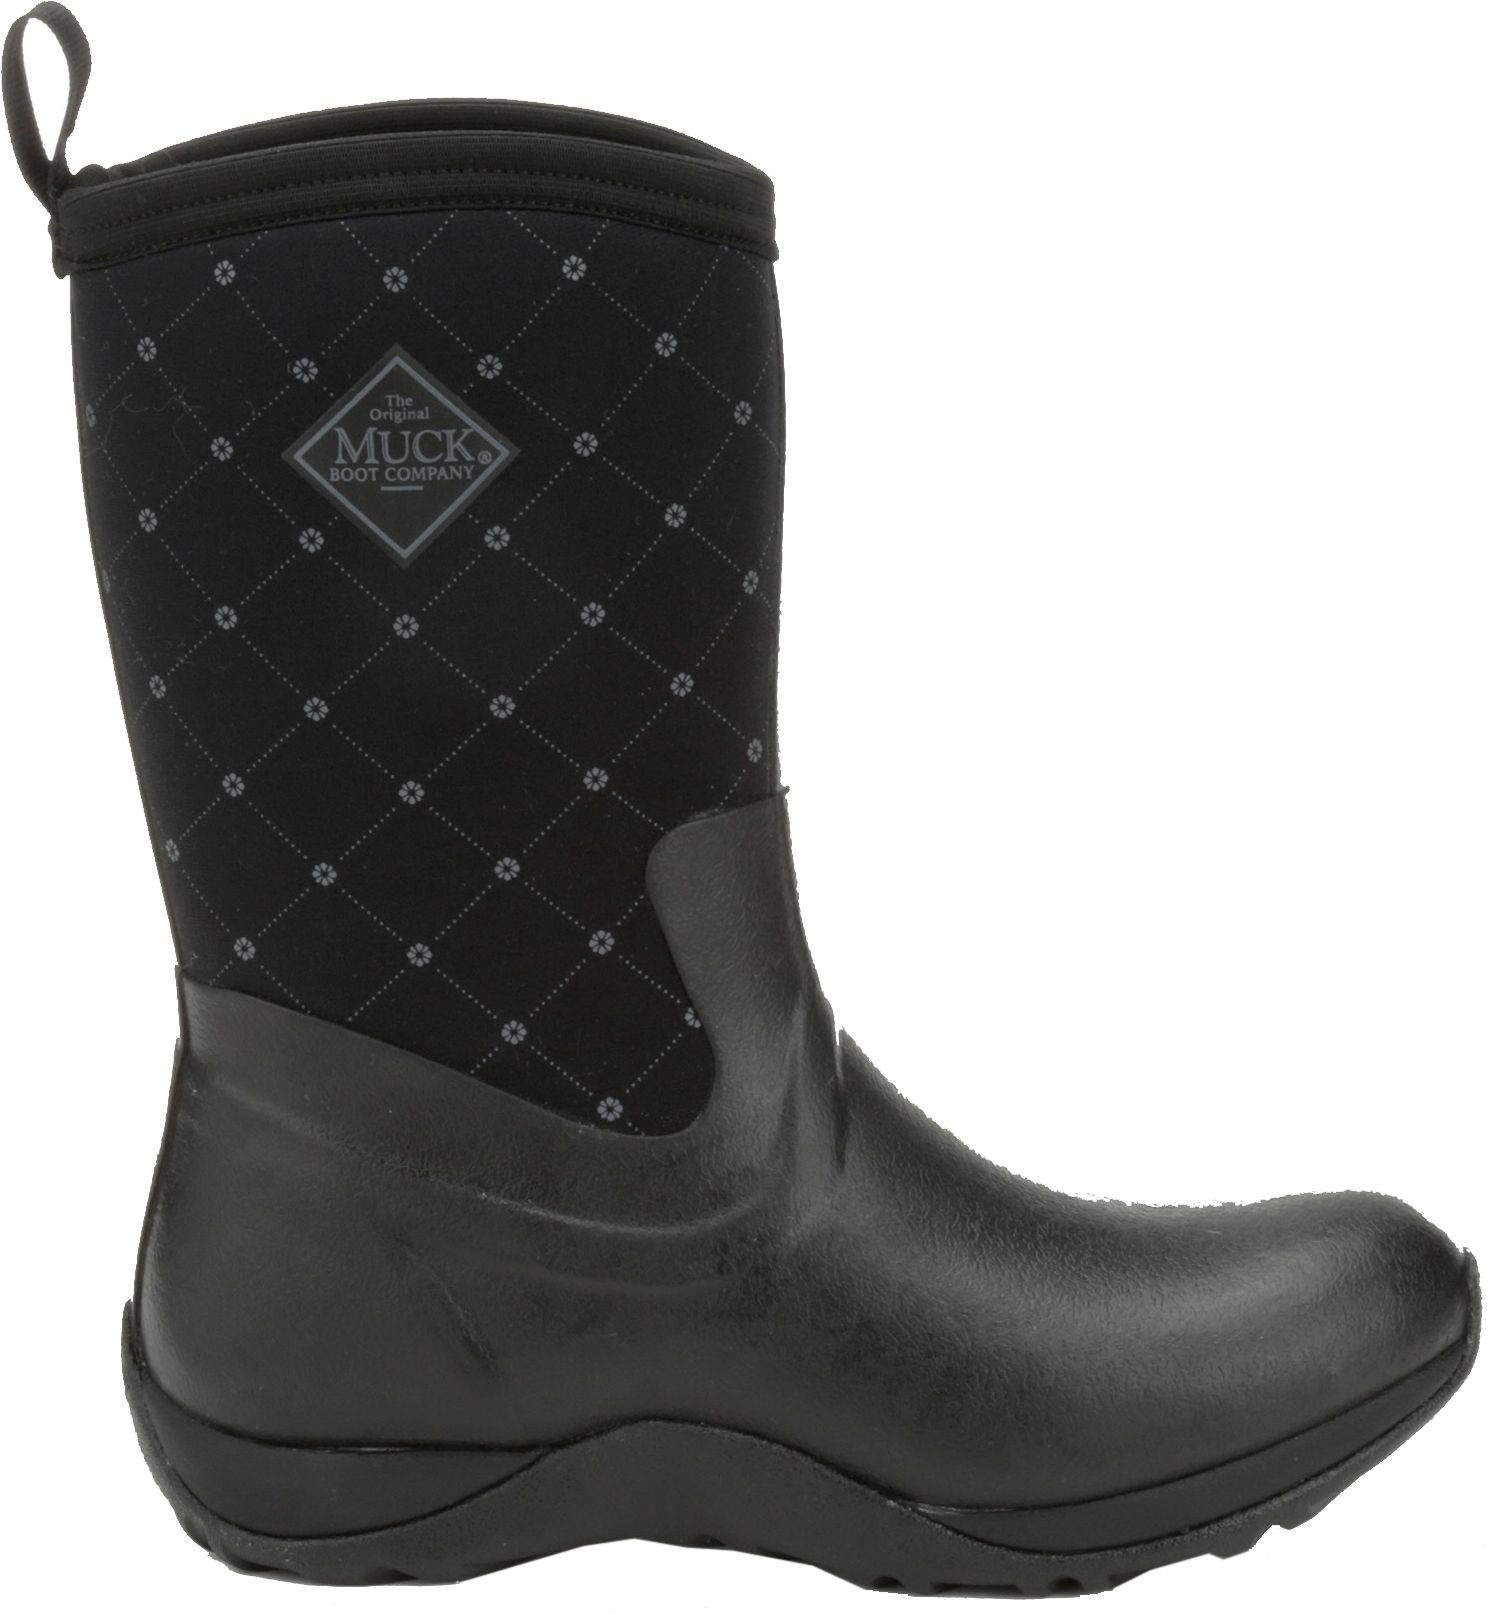 Muck Boots Women's Arctic Weekend Winter Boots | DICK'S Sporting Goods